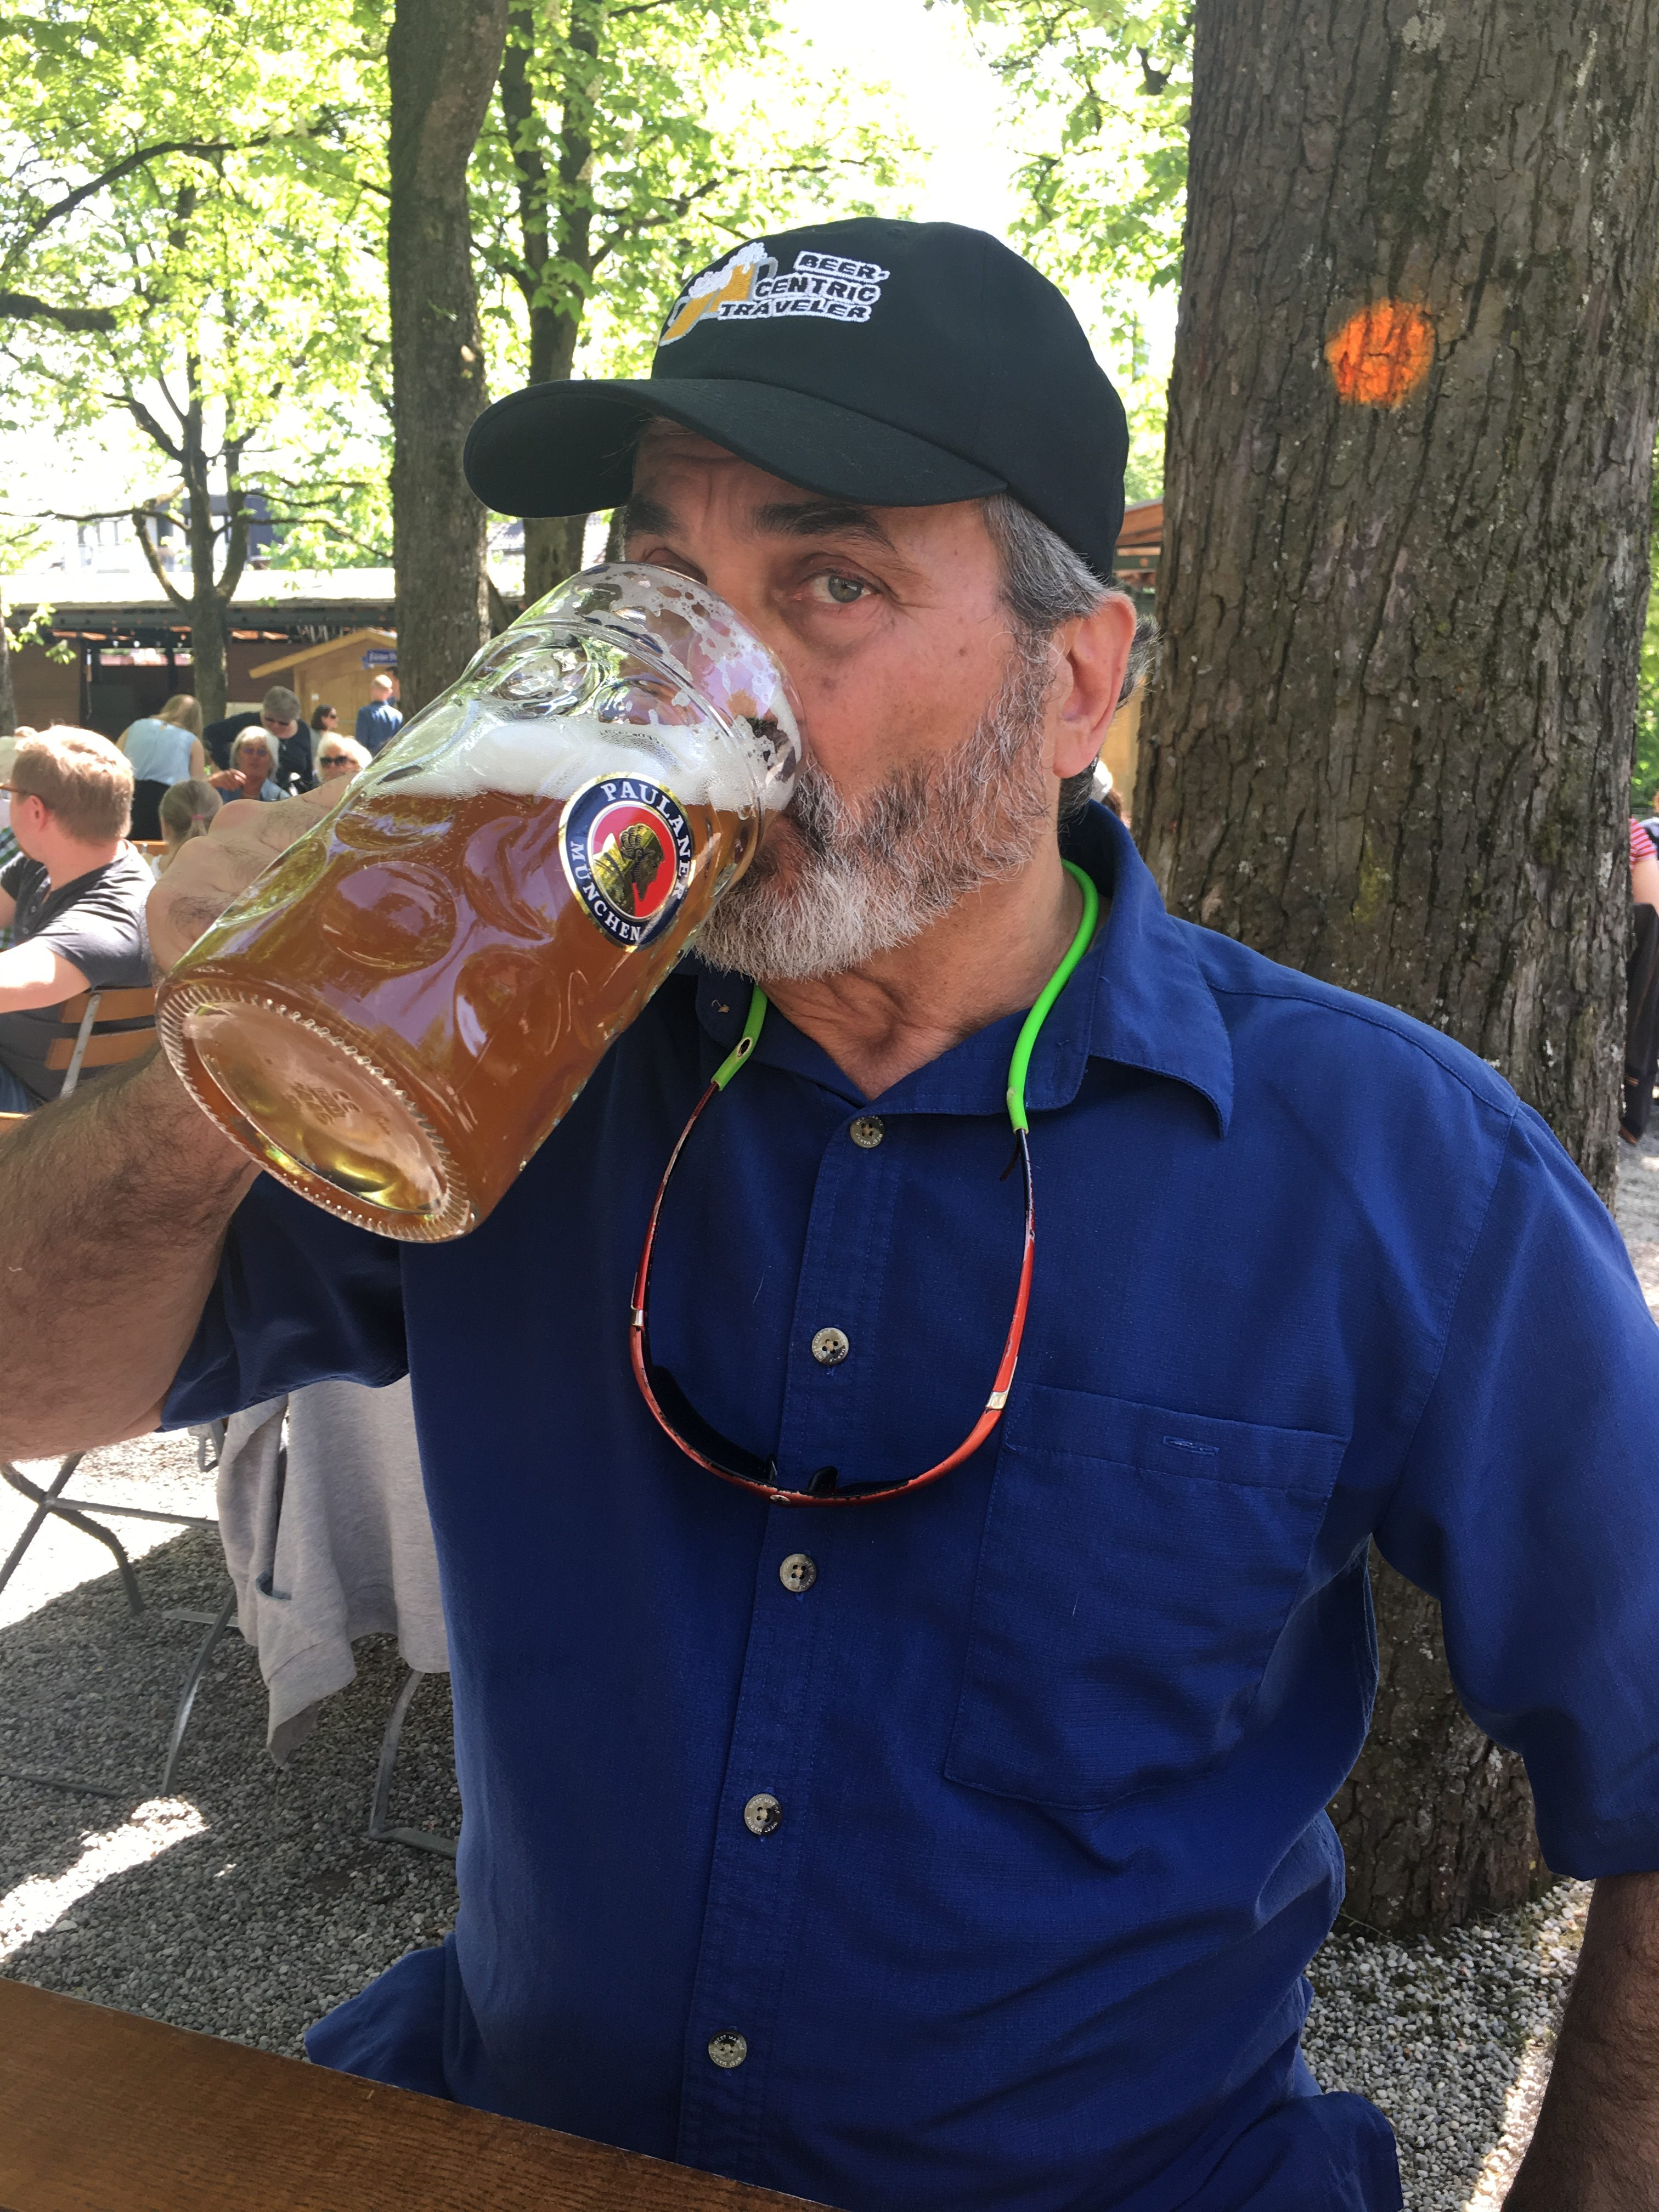 Drinking in Munich Beer Garden